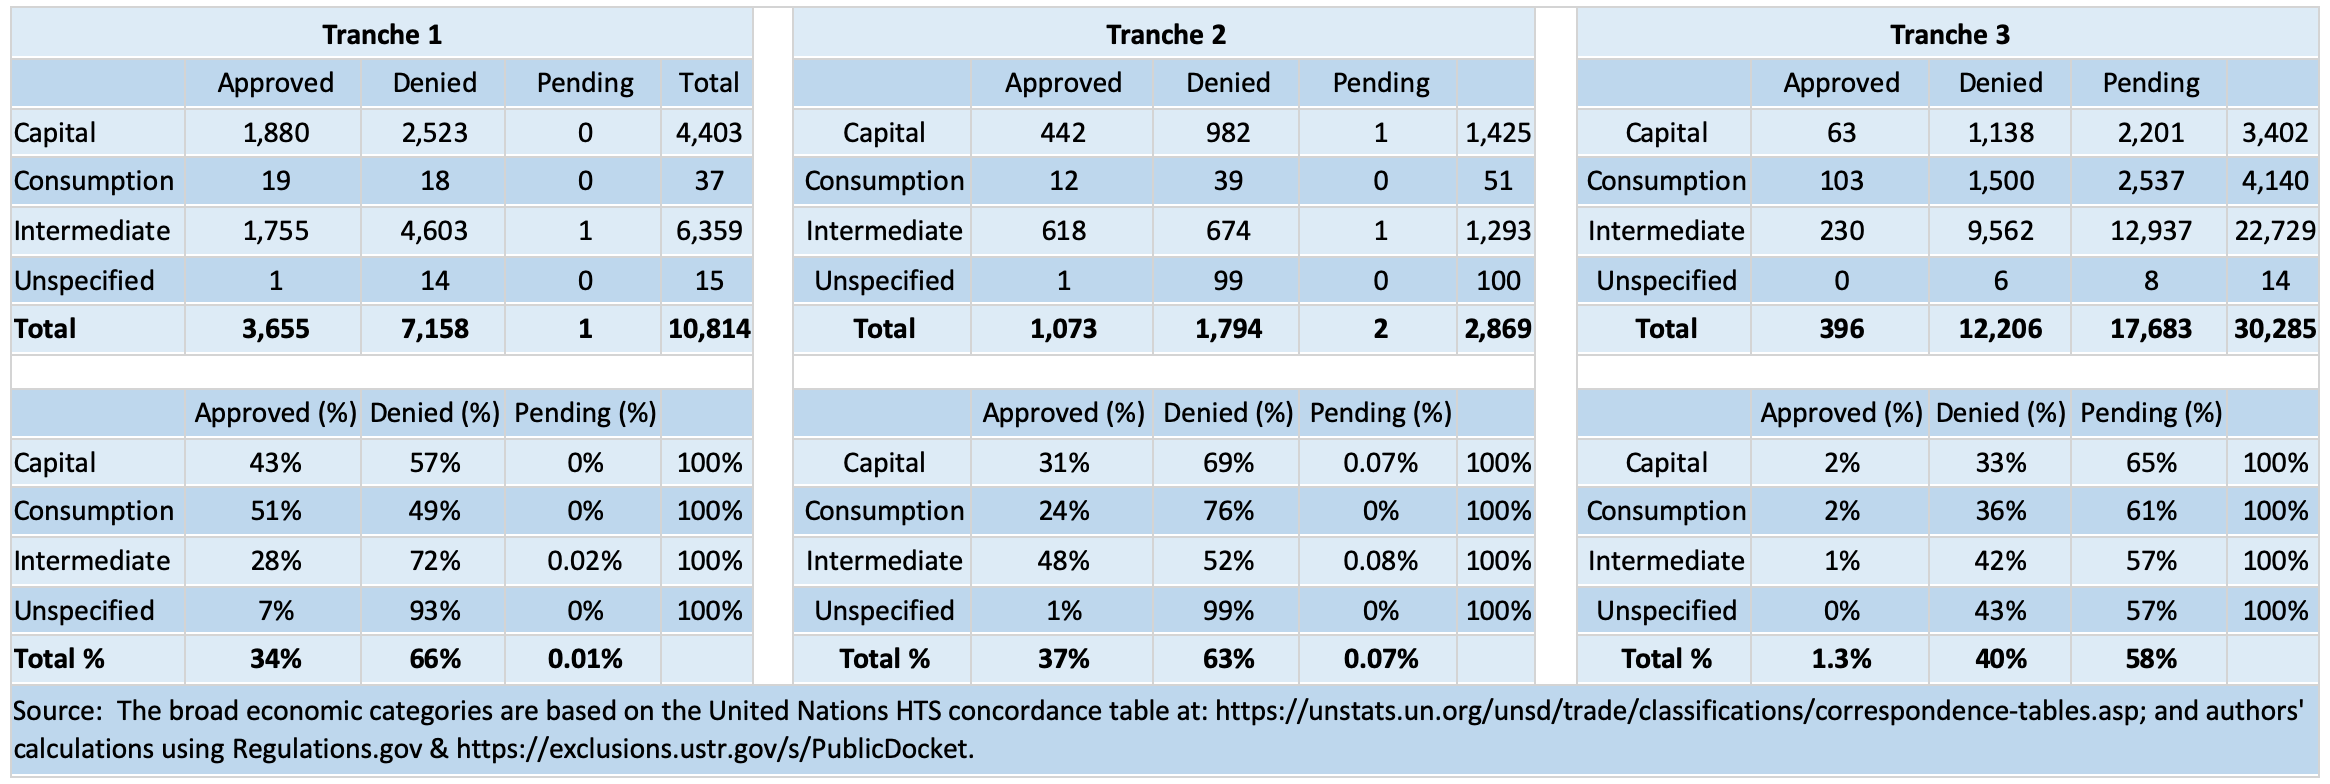 The broad economic categories are based on the United Nations HTS concordance table and authors' calculations using Regulations.gov and the USTR Exclusions Portal.